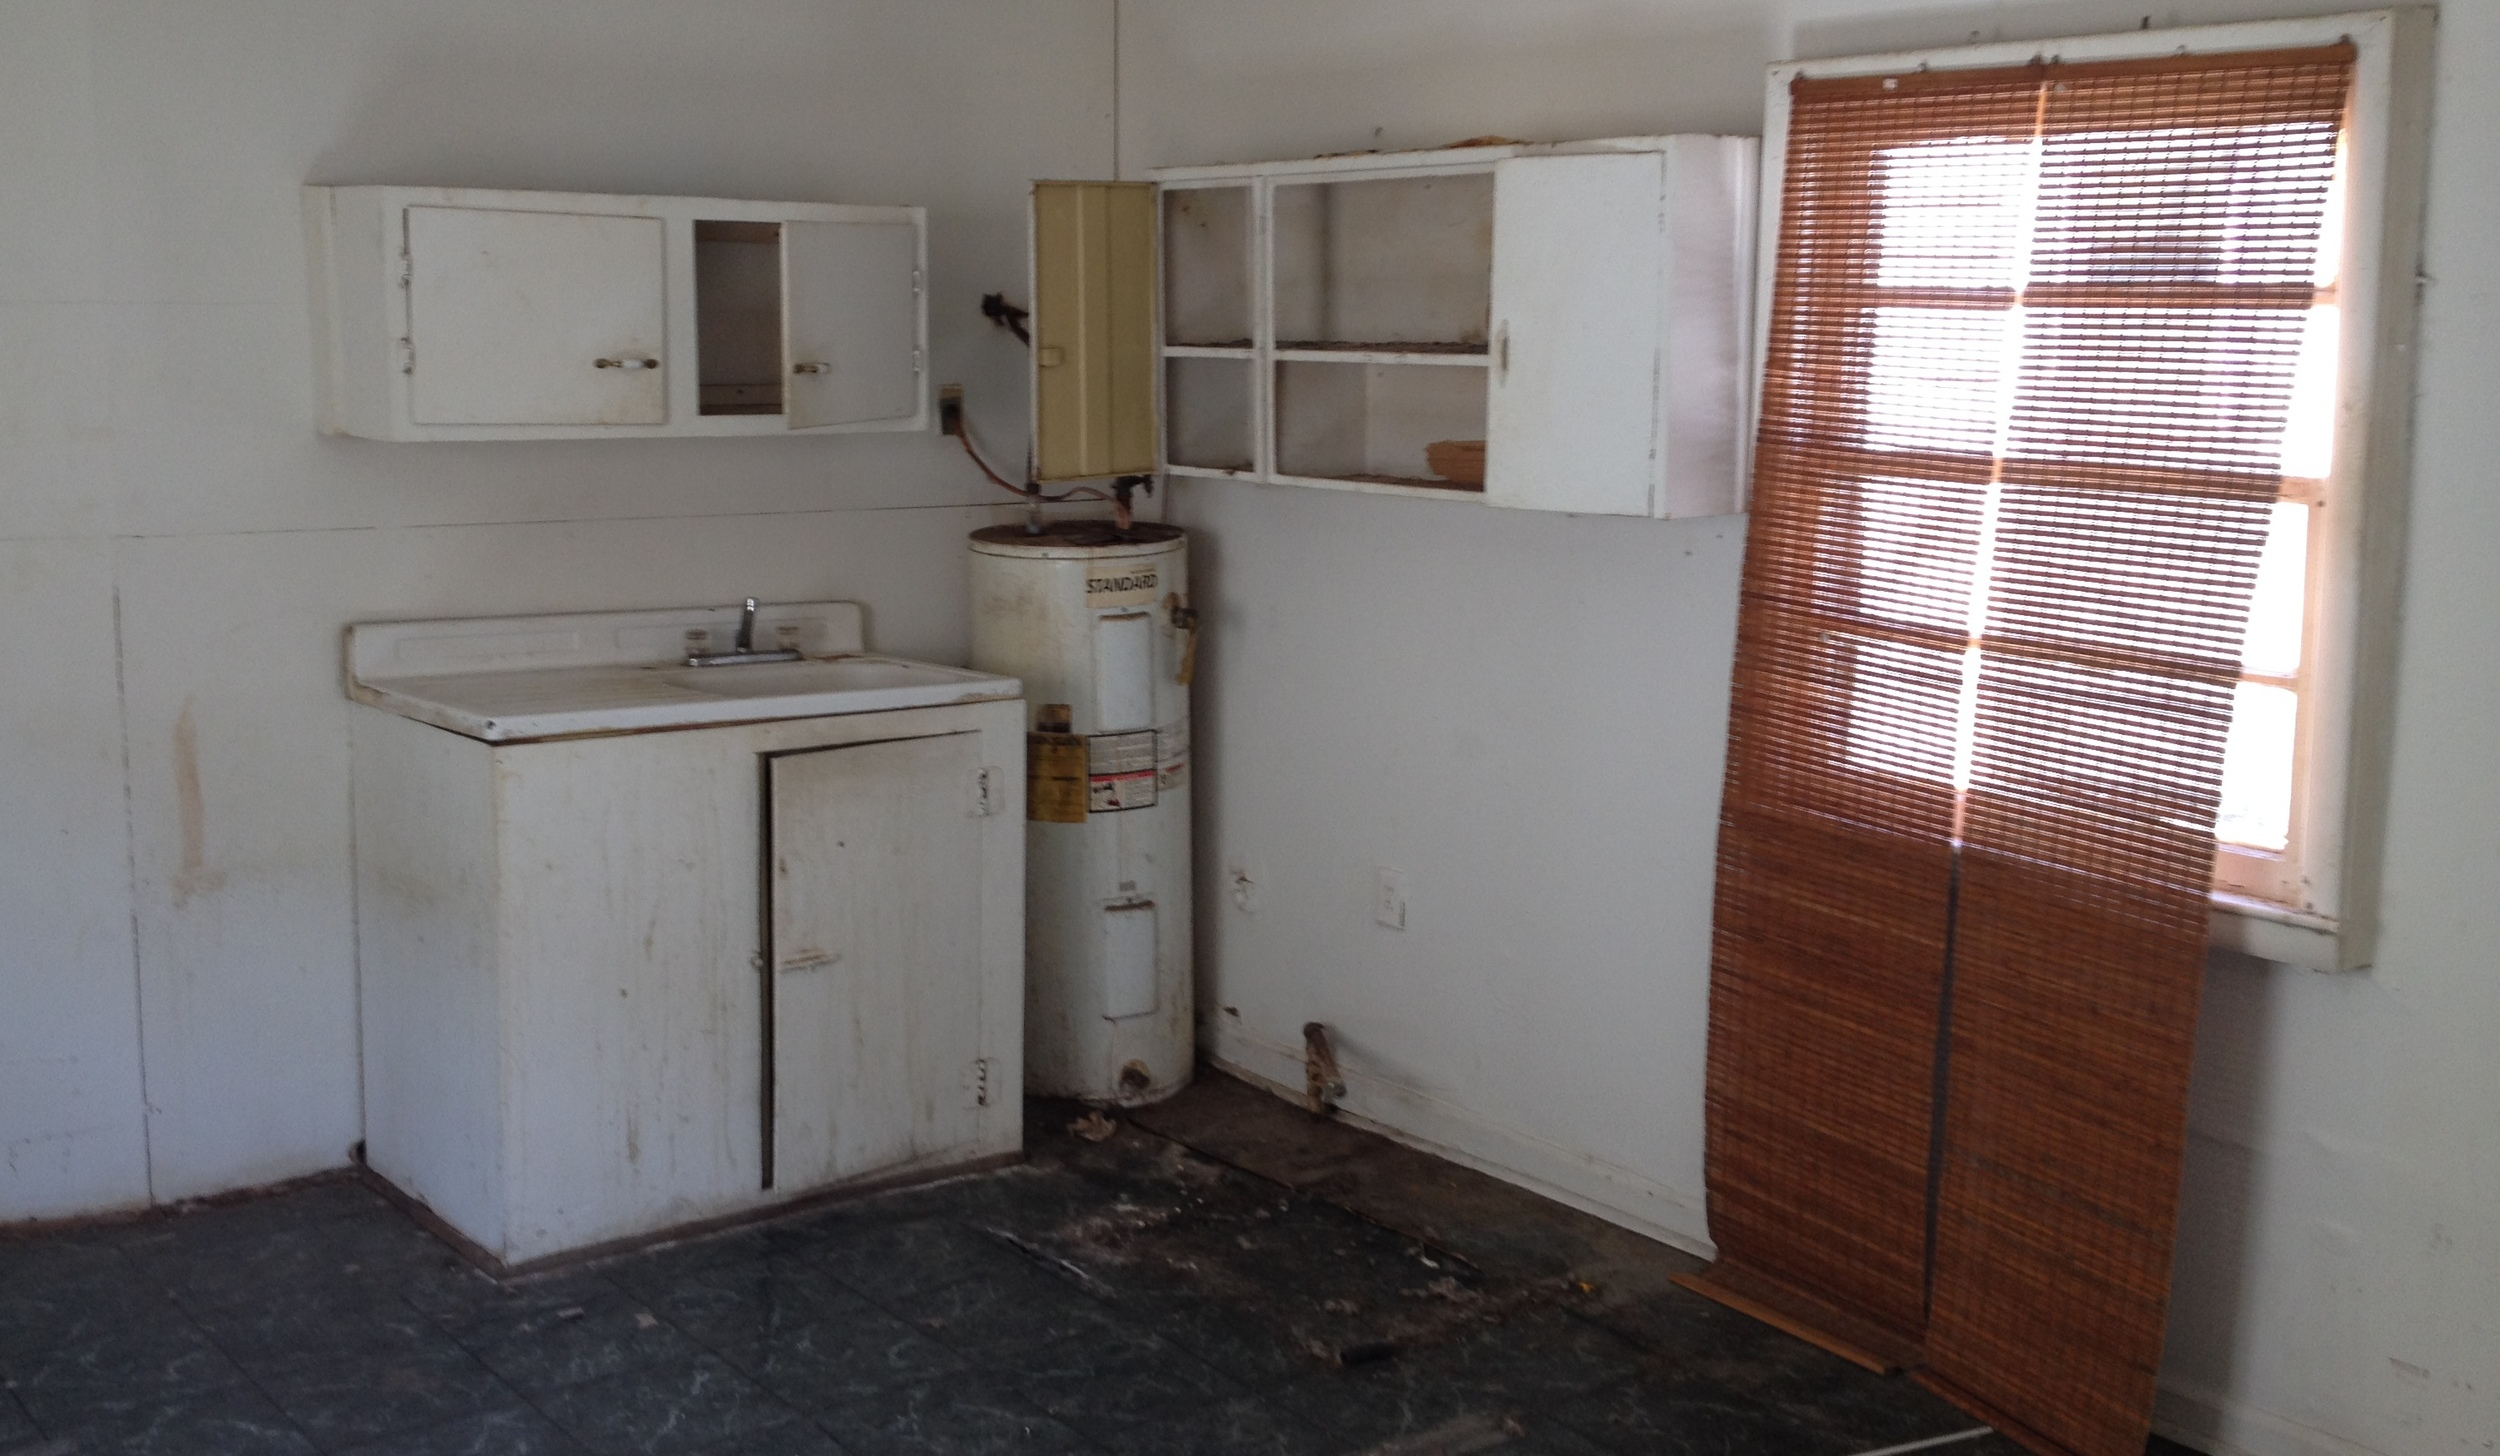 138 York St. Kitchen - Original Condition